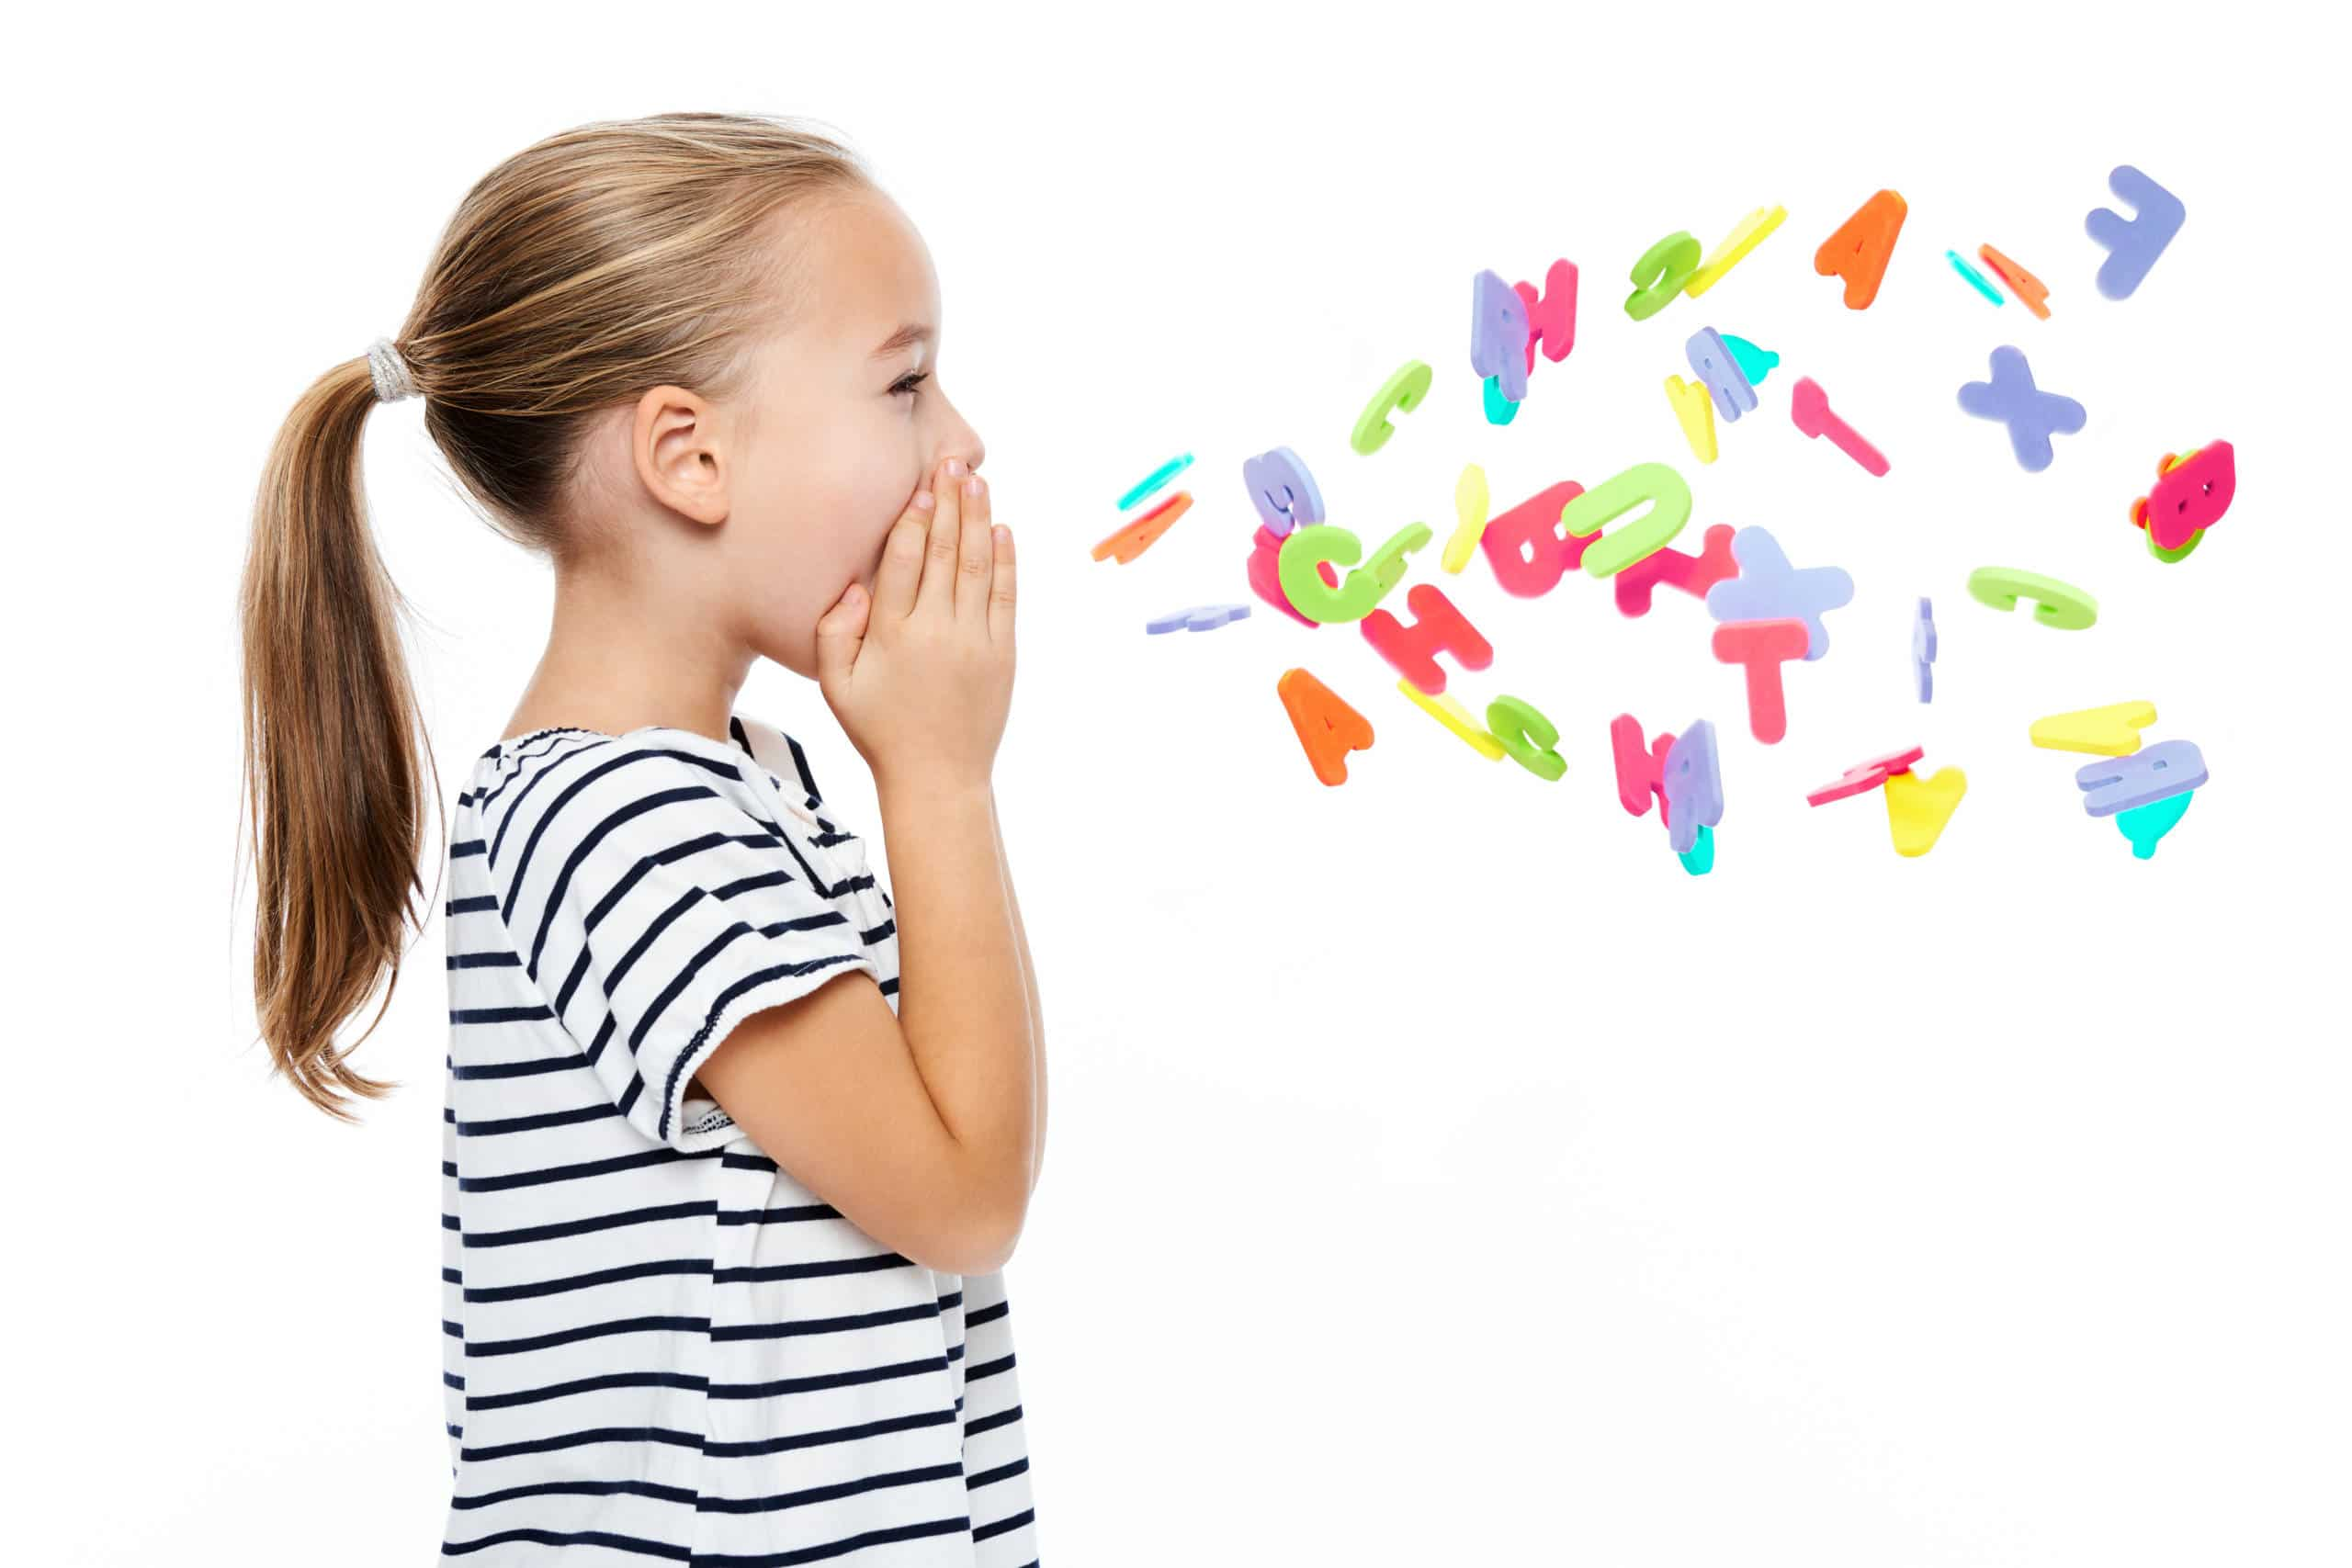 speech disorder image young girl with letters of the alphabet